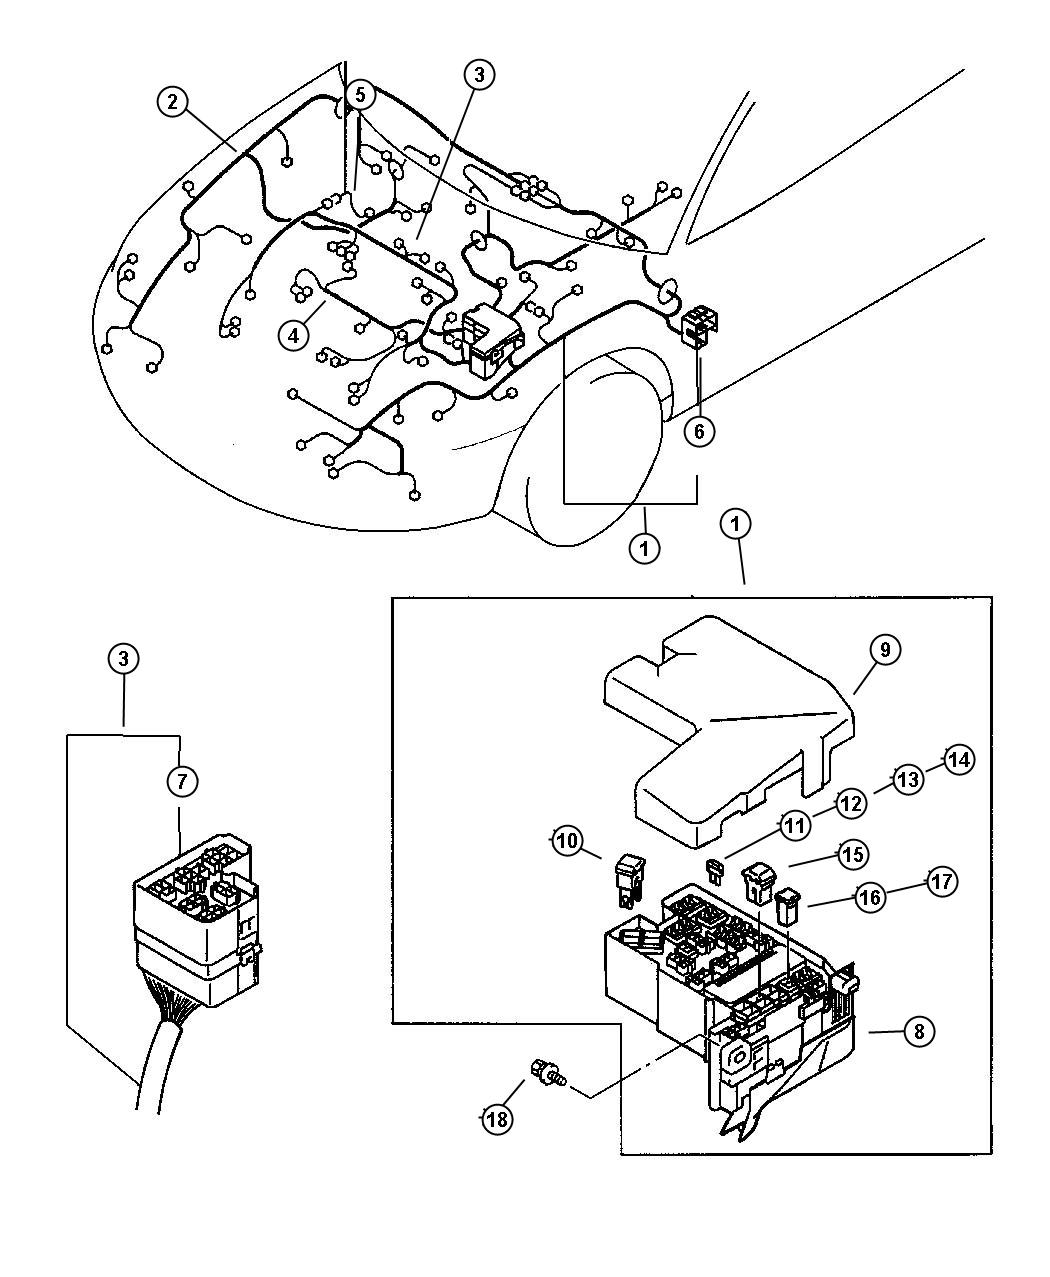 2004 Dodge Stratus Wiring Diagram from www.moparpartsinc.com